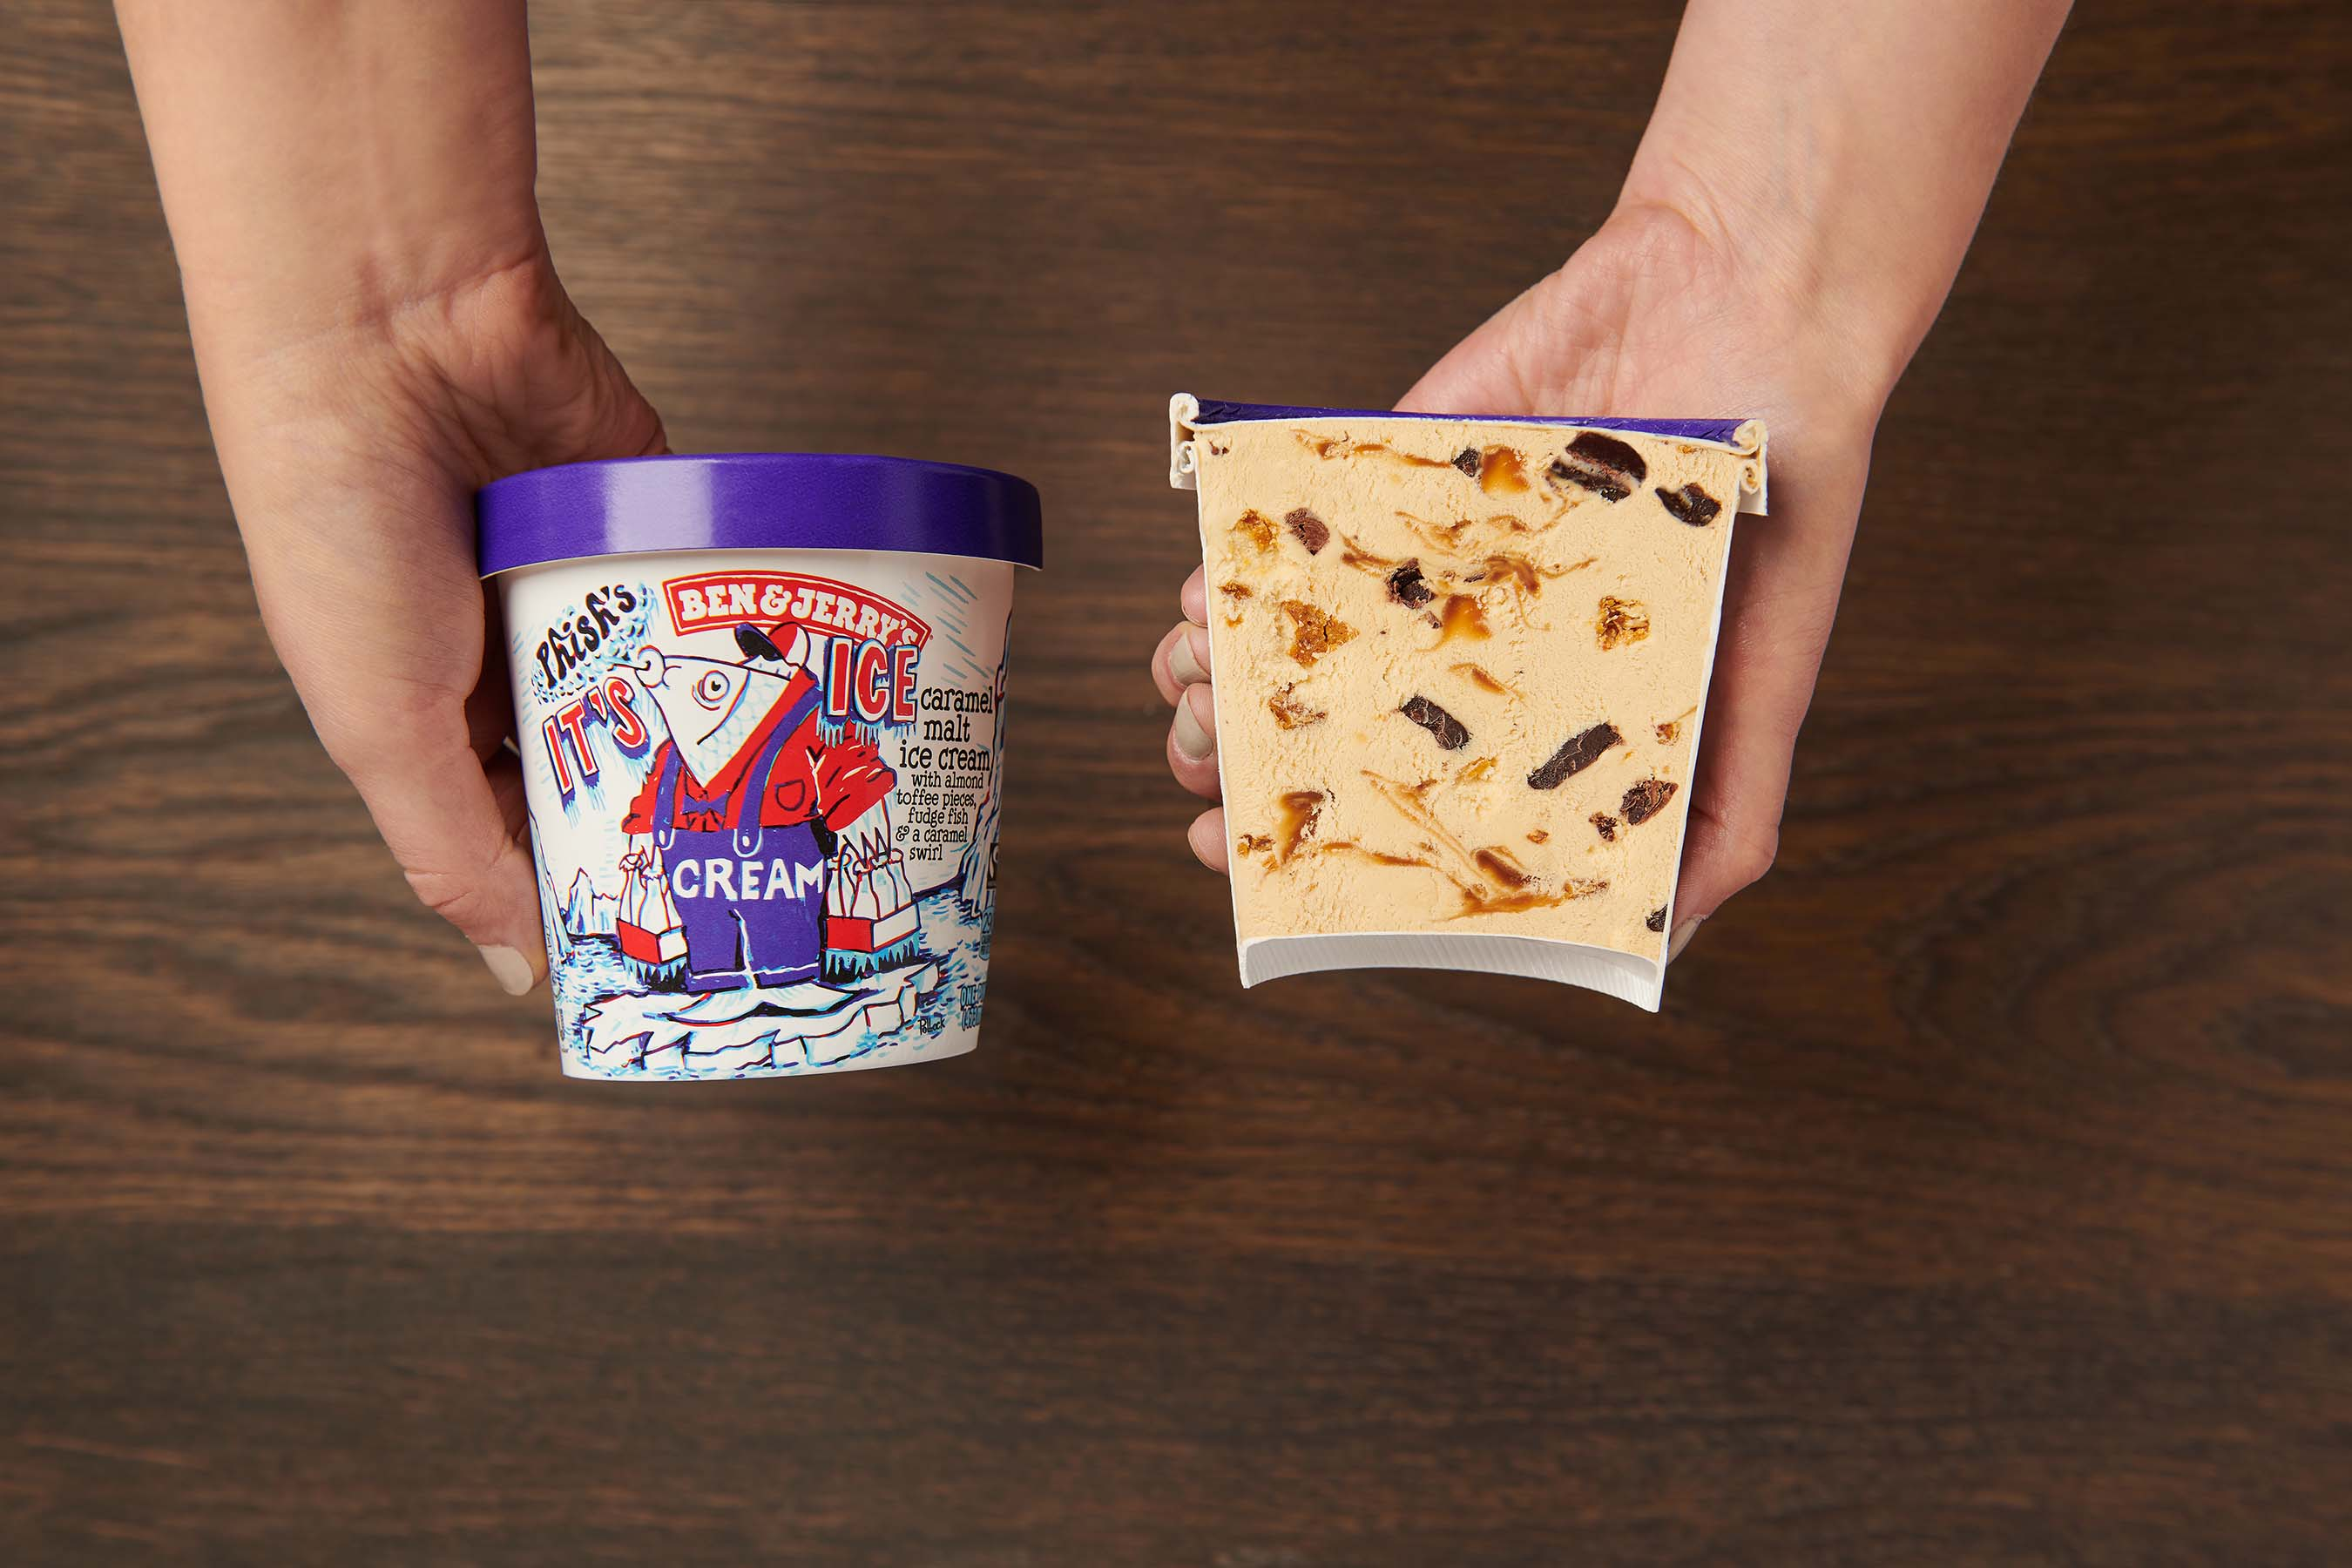 It's Ice…Cream features a caramel malt ice cream with almond toffee pieces, fudge fish and a caramel swirl.